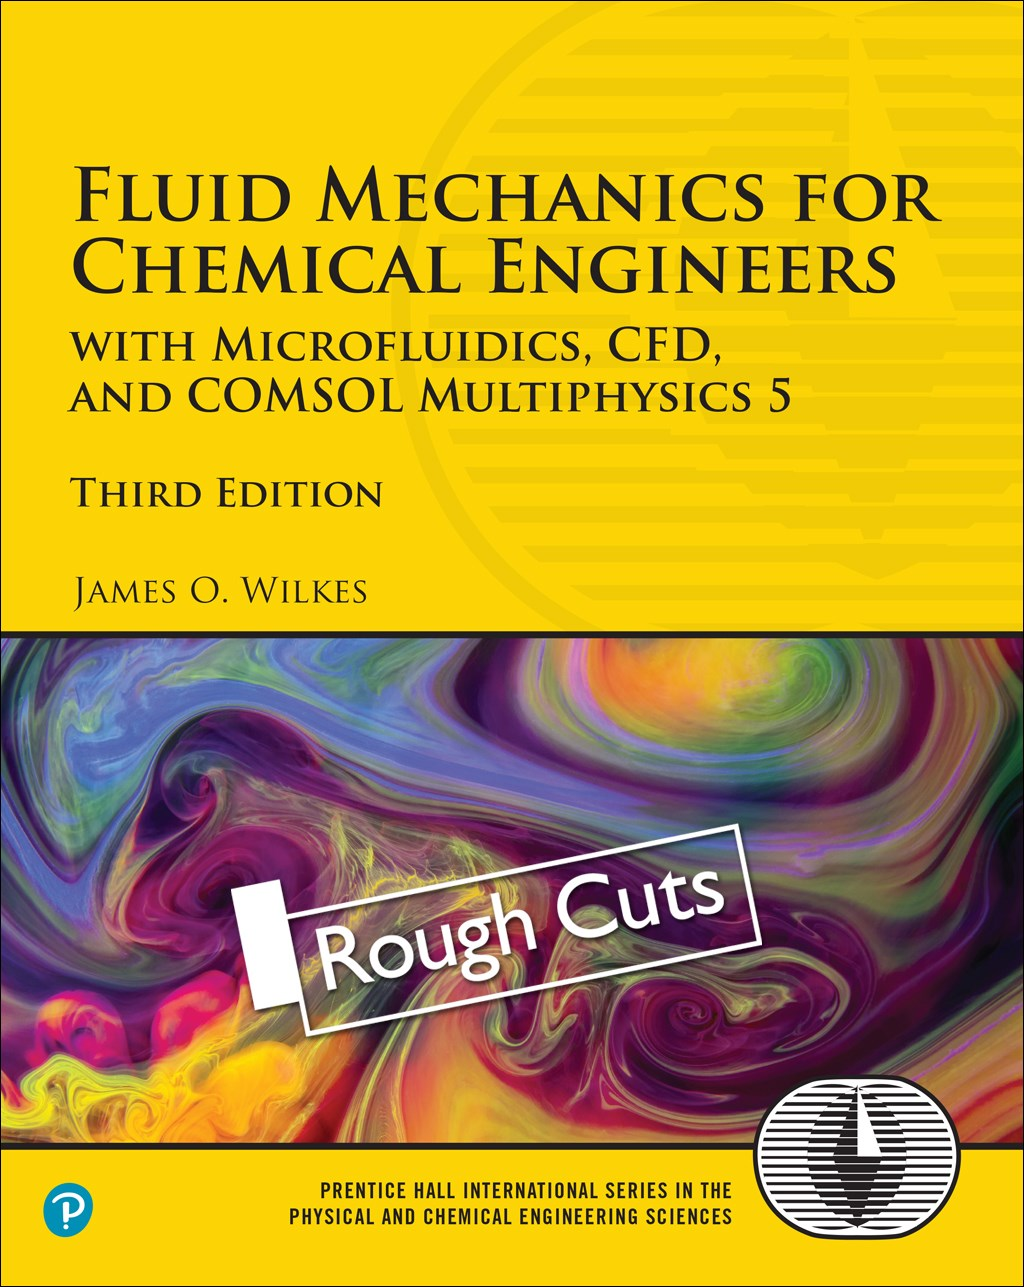 Fluid Mechanics for Chemical Engineers,Rough Cuts: with Microfluidics, CFD, and COMSOL Multiphysics 5, 3rd Edition